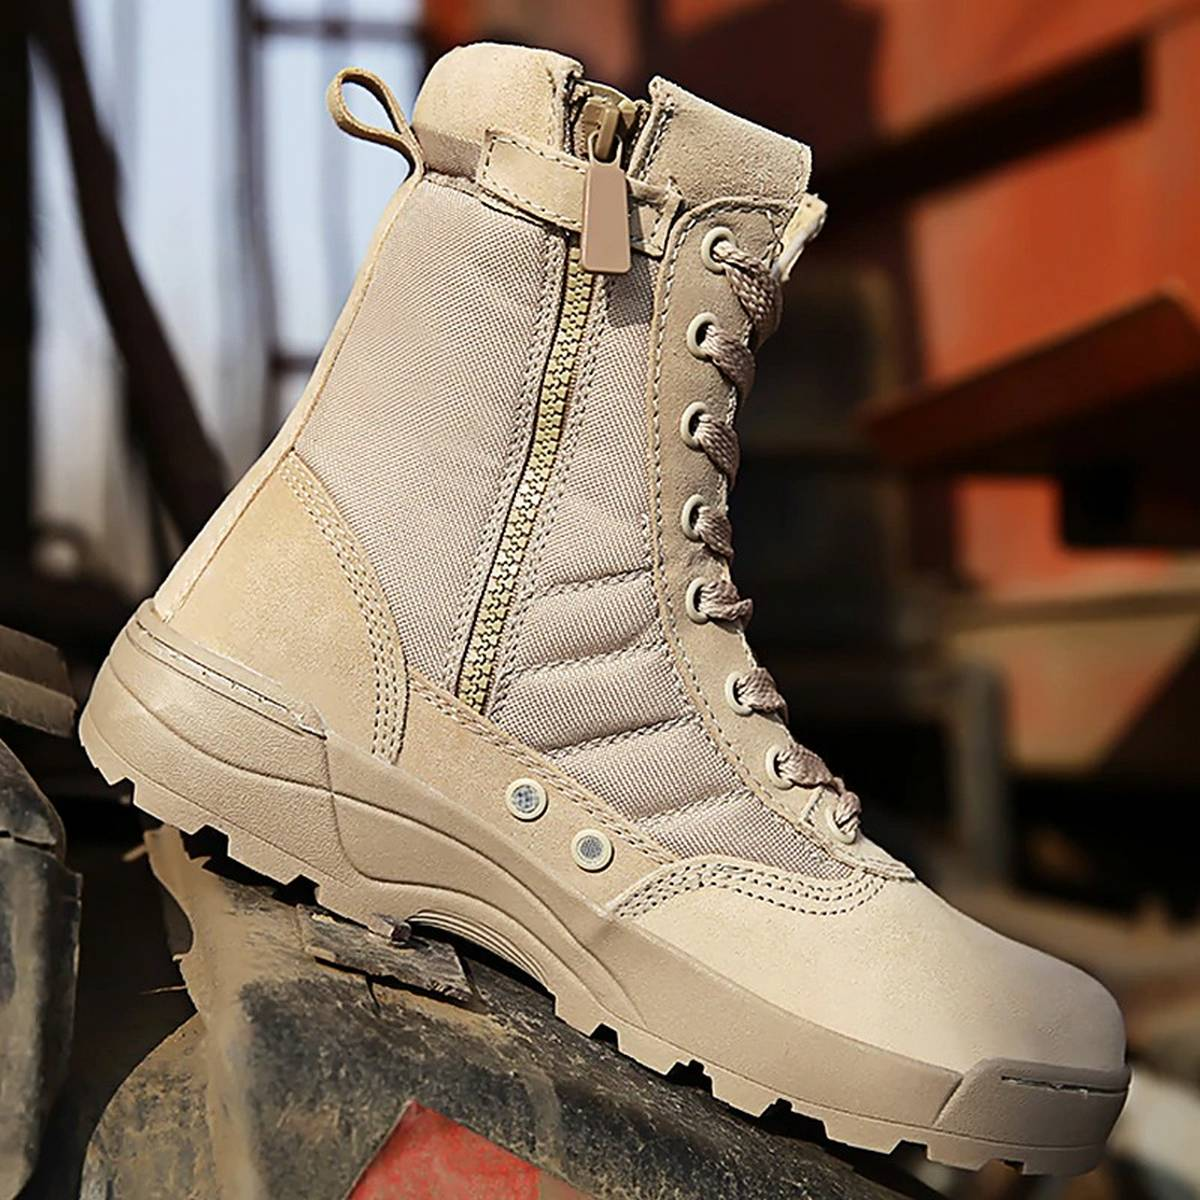 Swat Boots Outdoor Military Breathable Army Desert Hiking Shoes